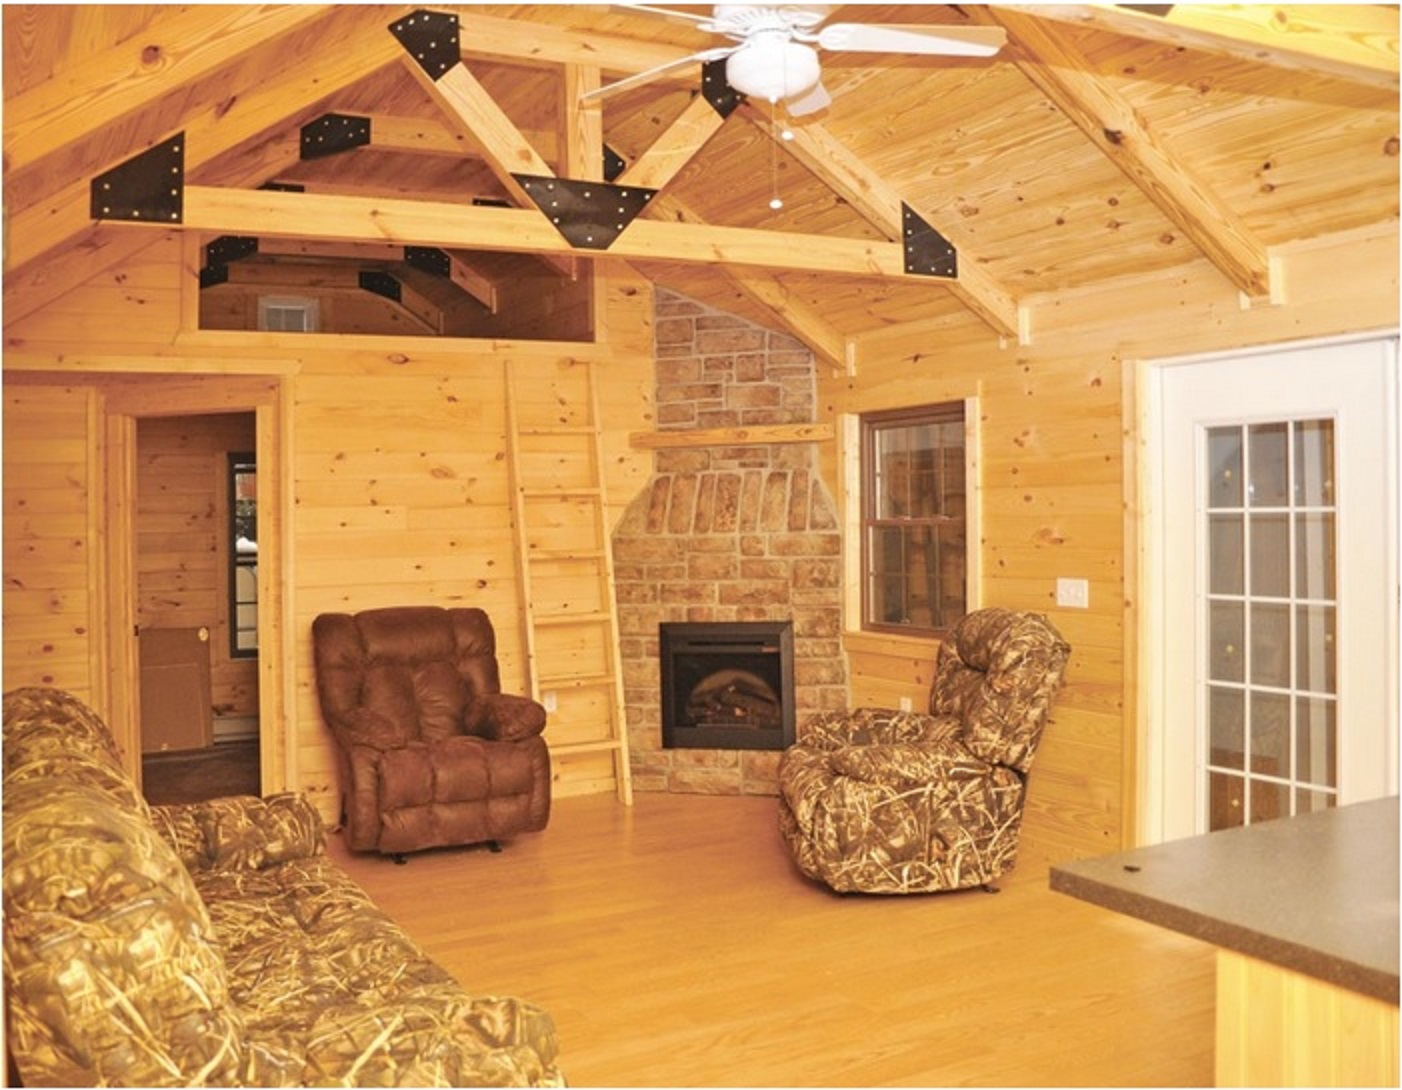 Getaway Cabin Kit Homes Are A Cheap Way To Build